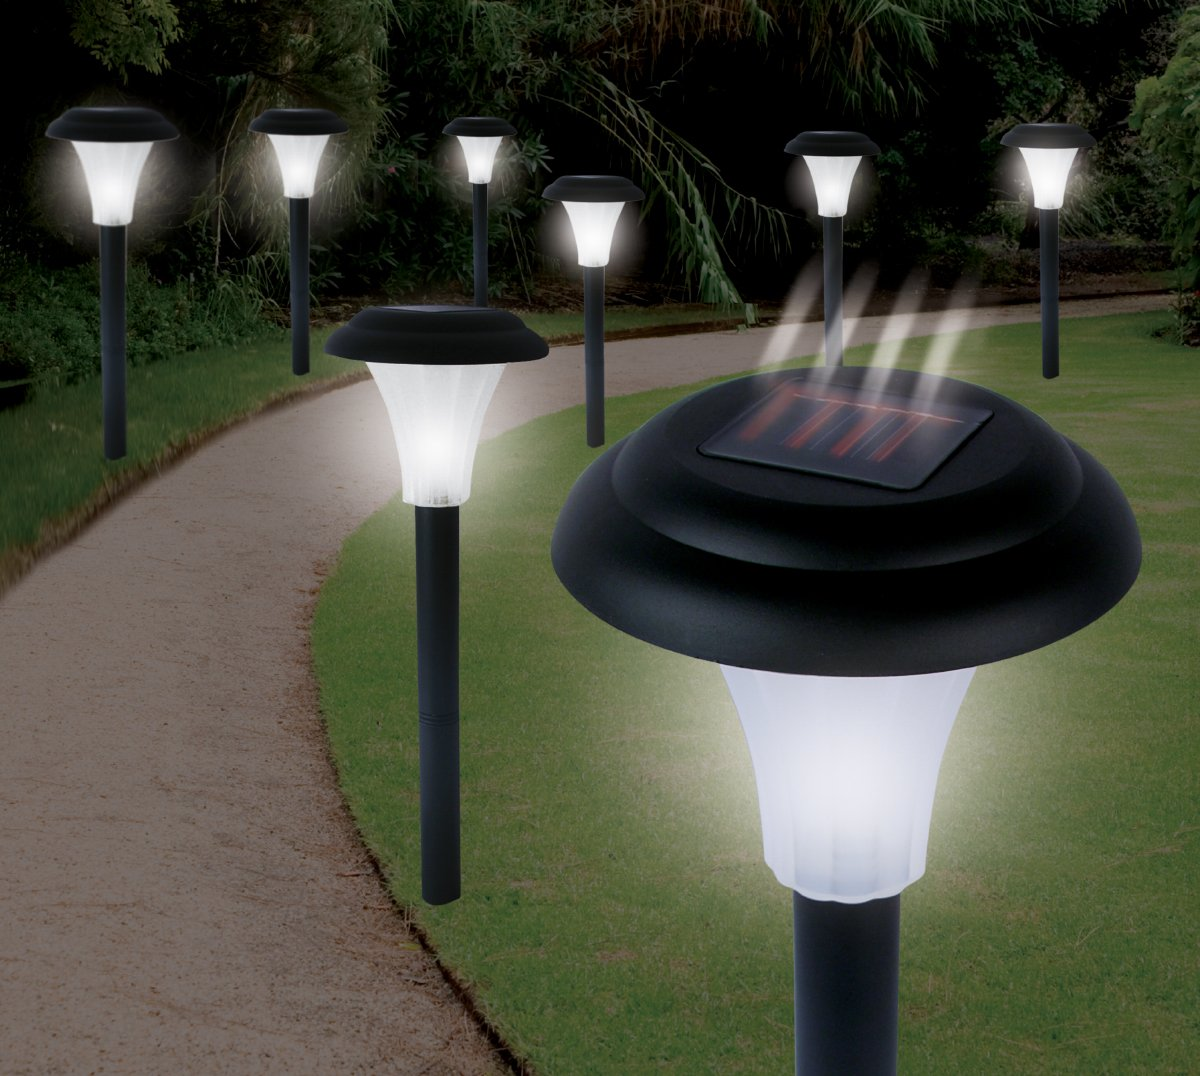 Ideaworks JB5629 Solar Powered LED Accent Light, Set Of 8   String Lights    Amazon.com